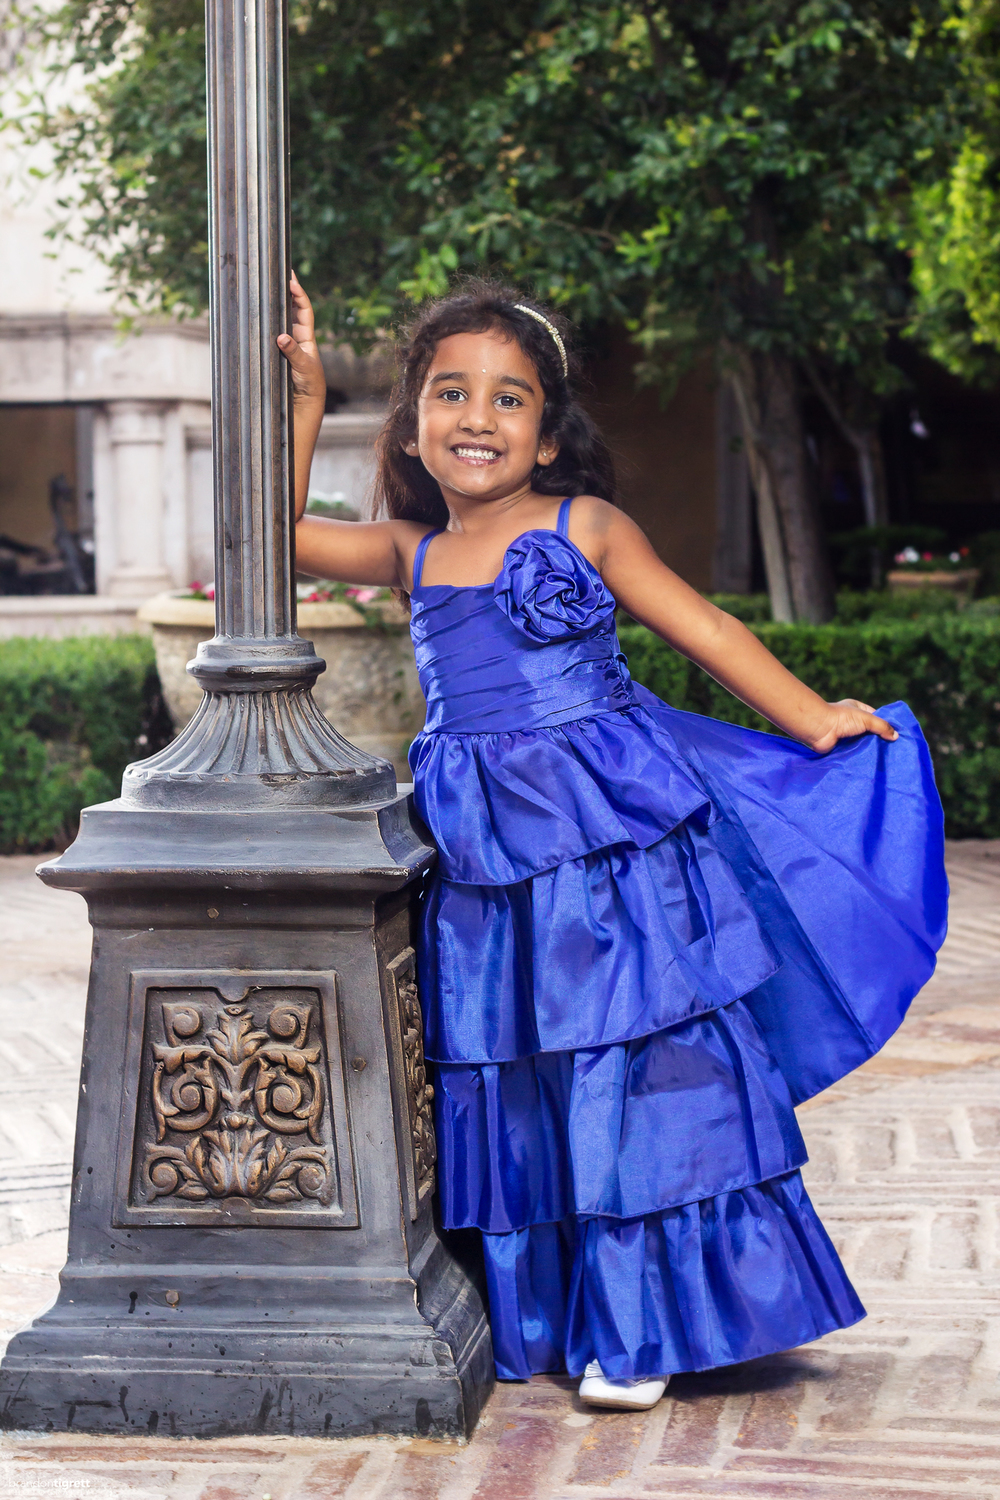 Scottsdale Family Photos - Villa Siena